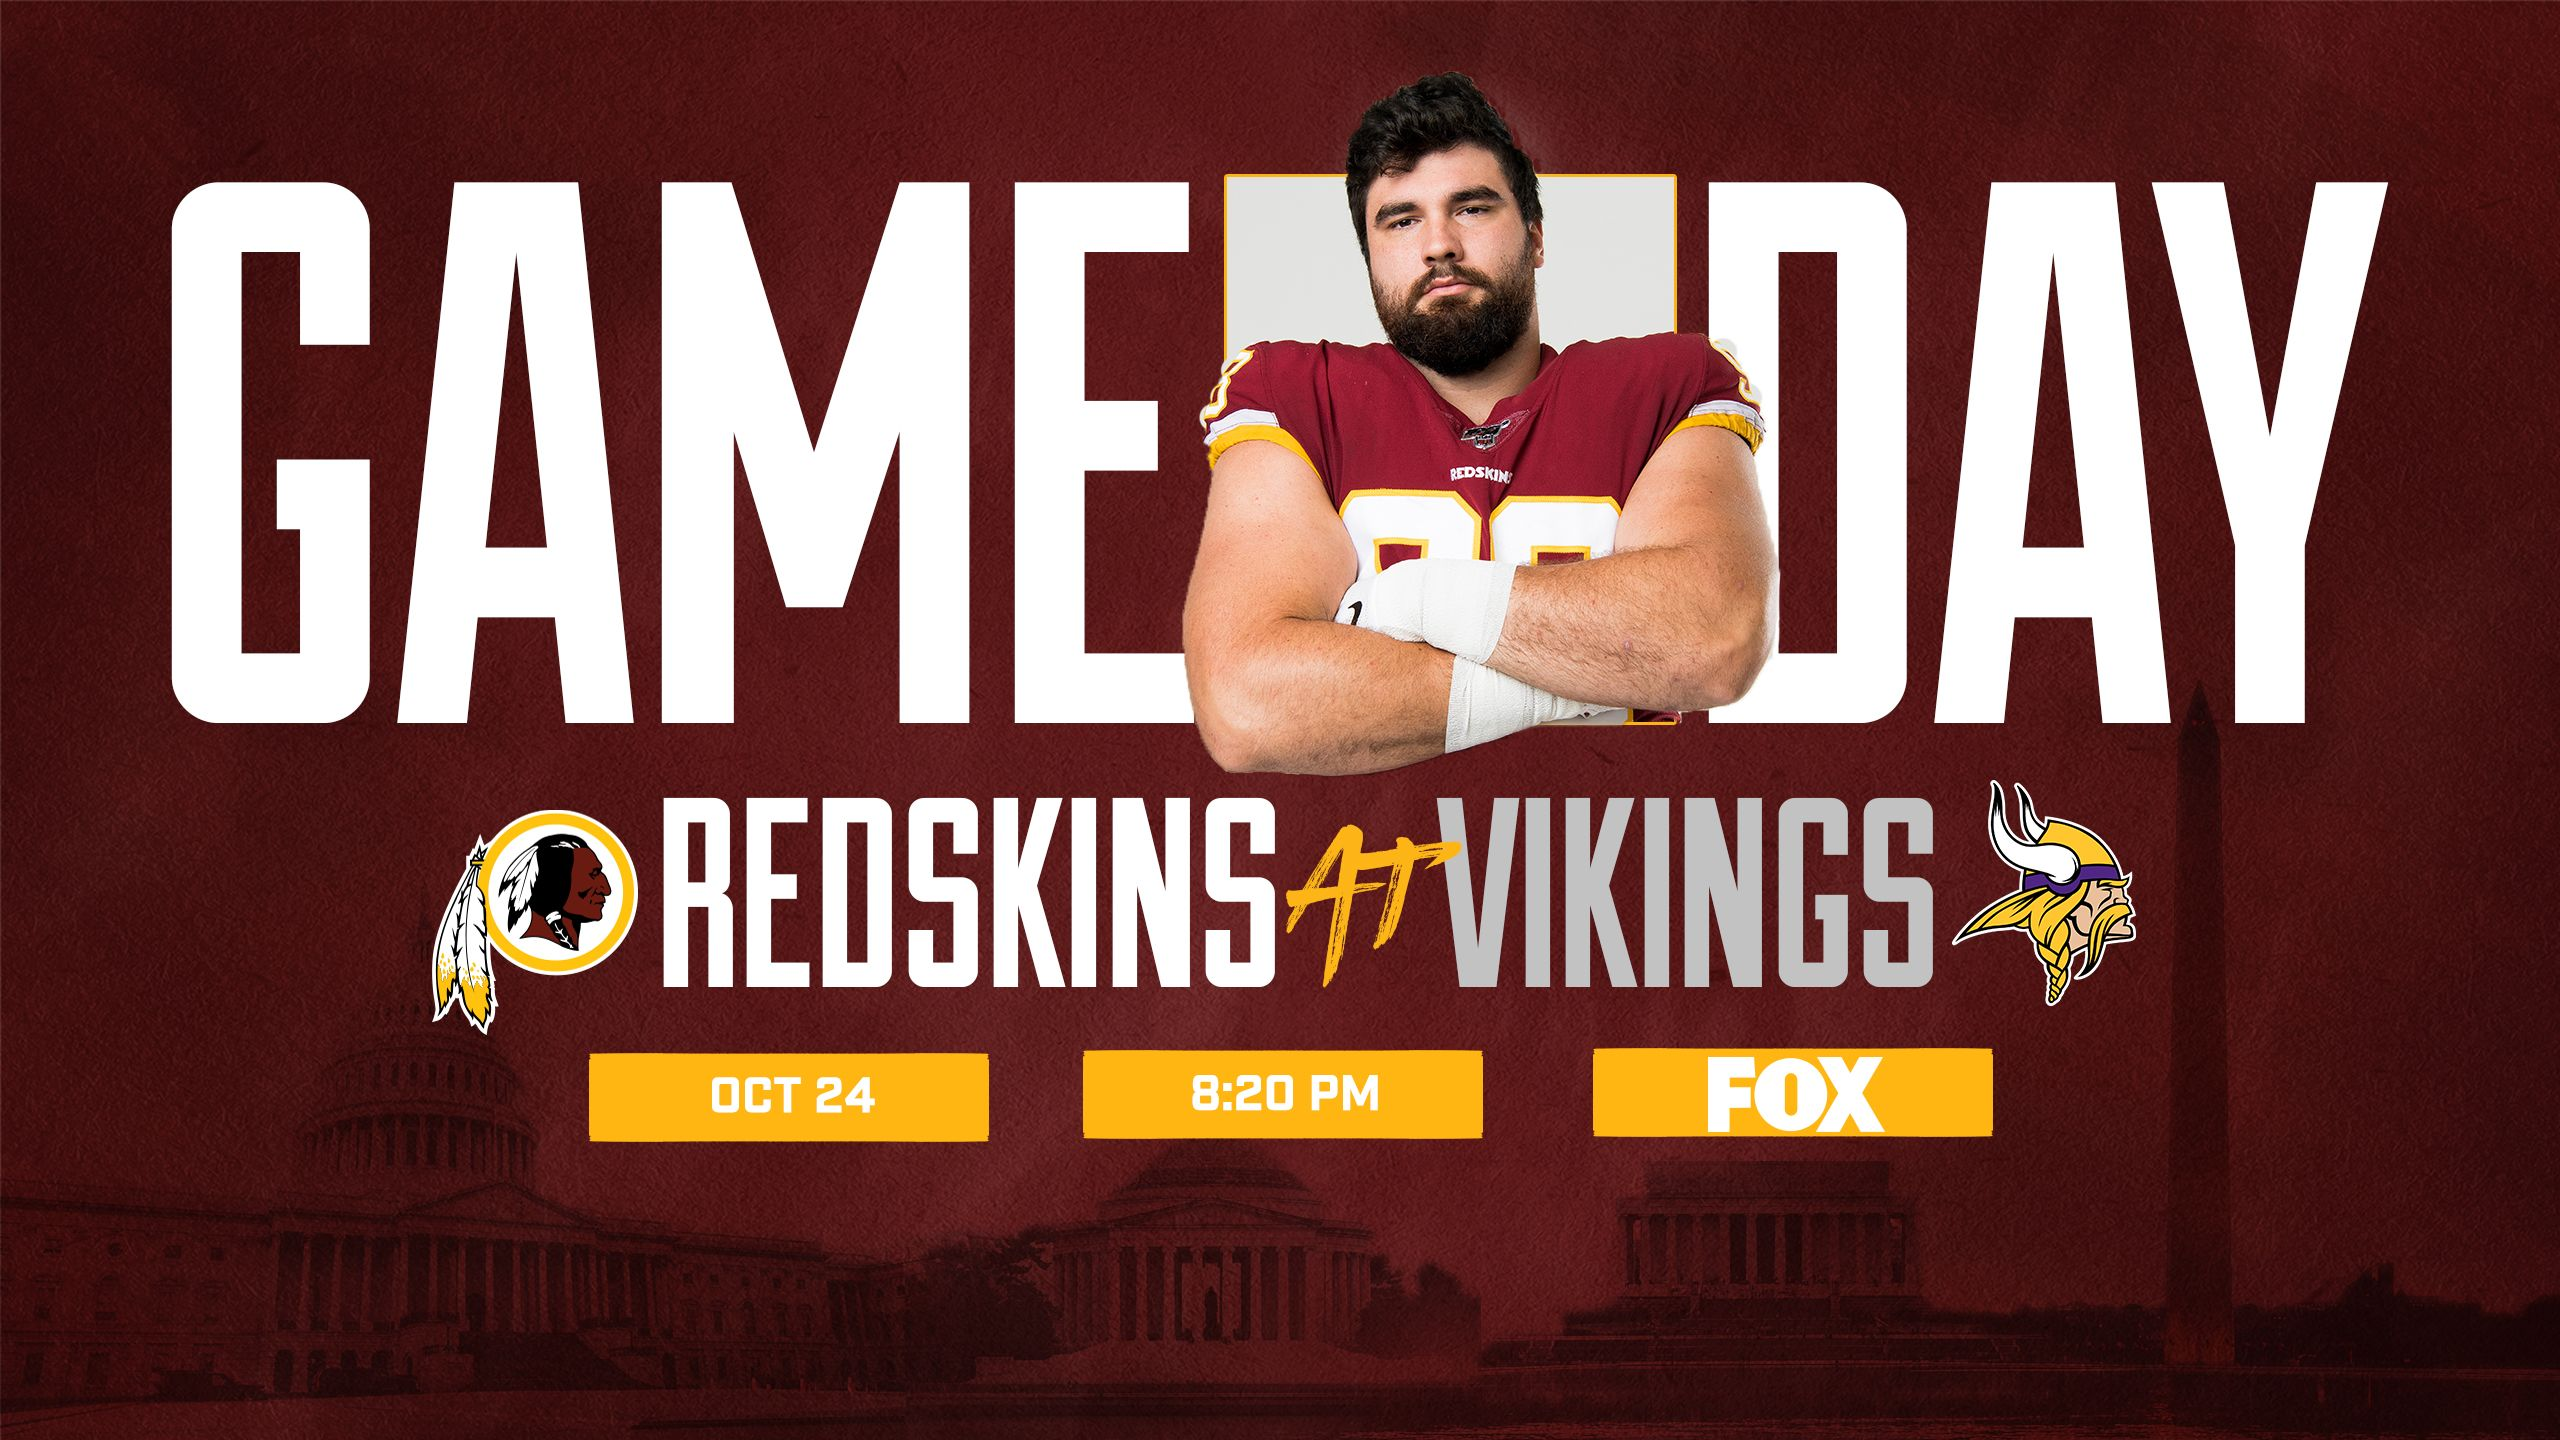 2019-week-8-vikings-gameday-header